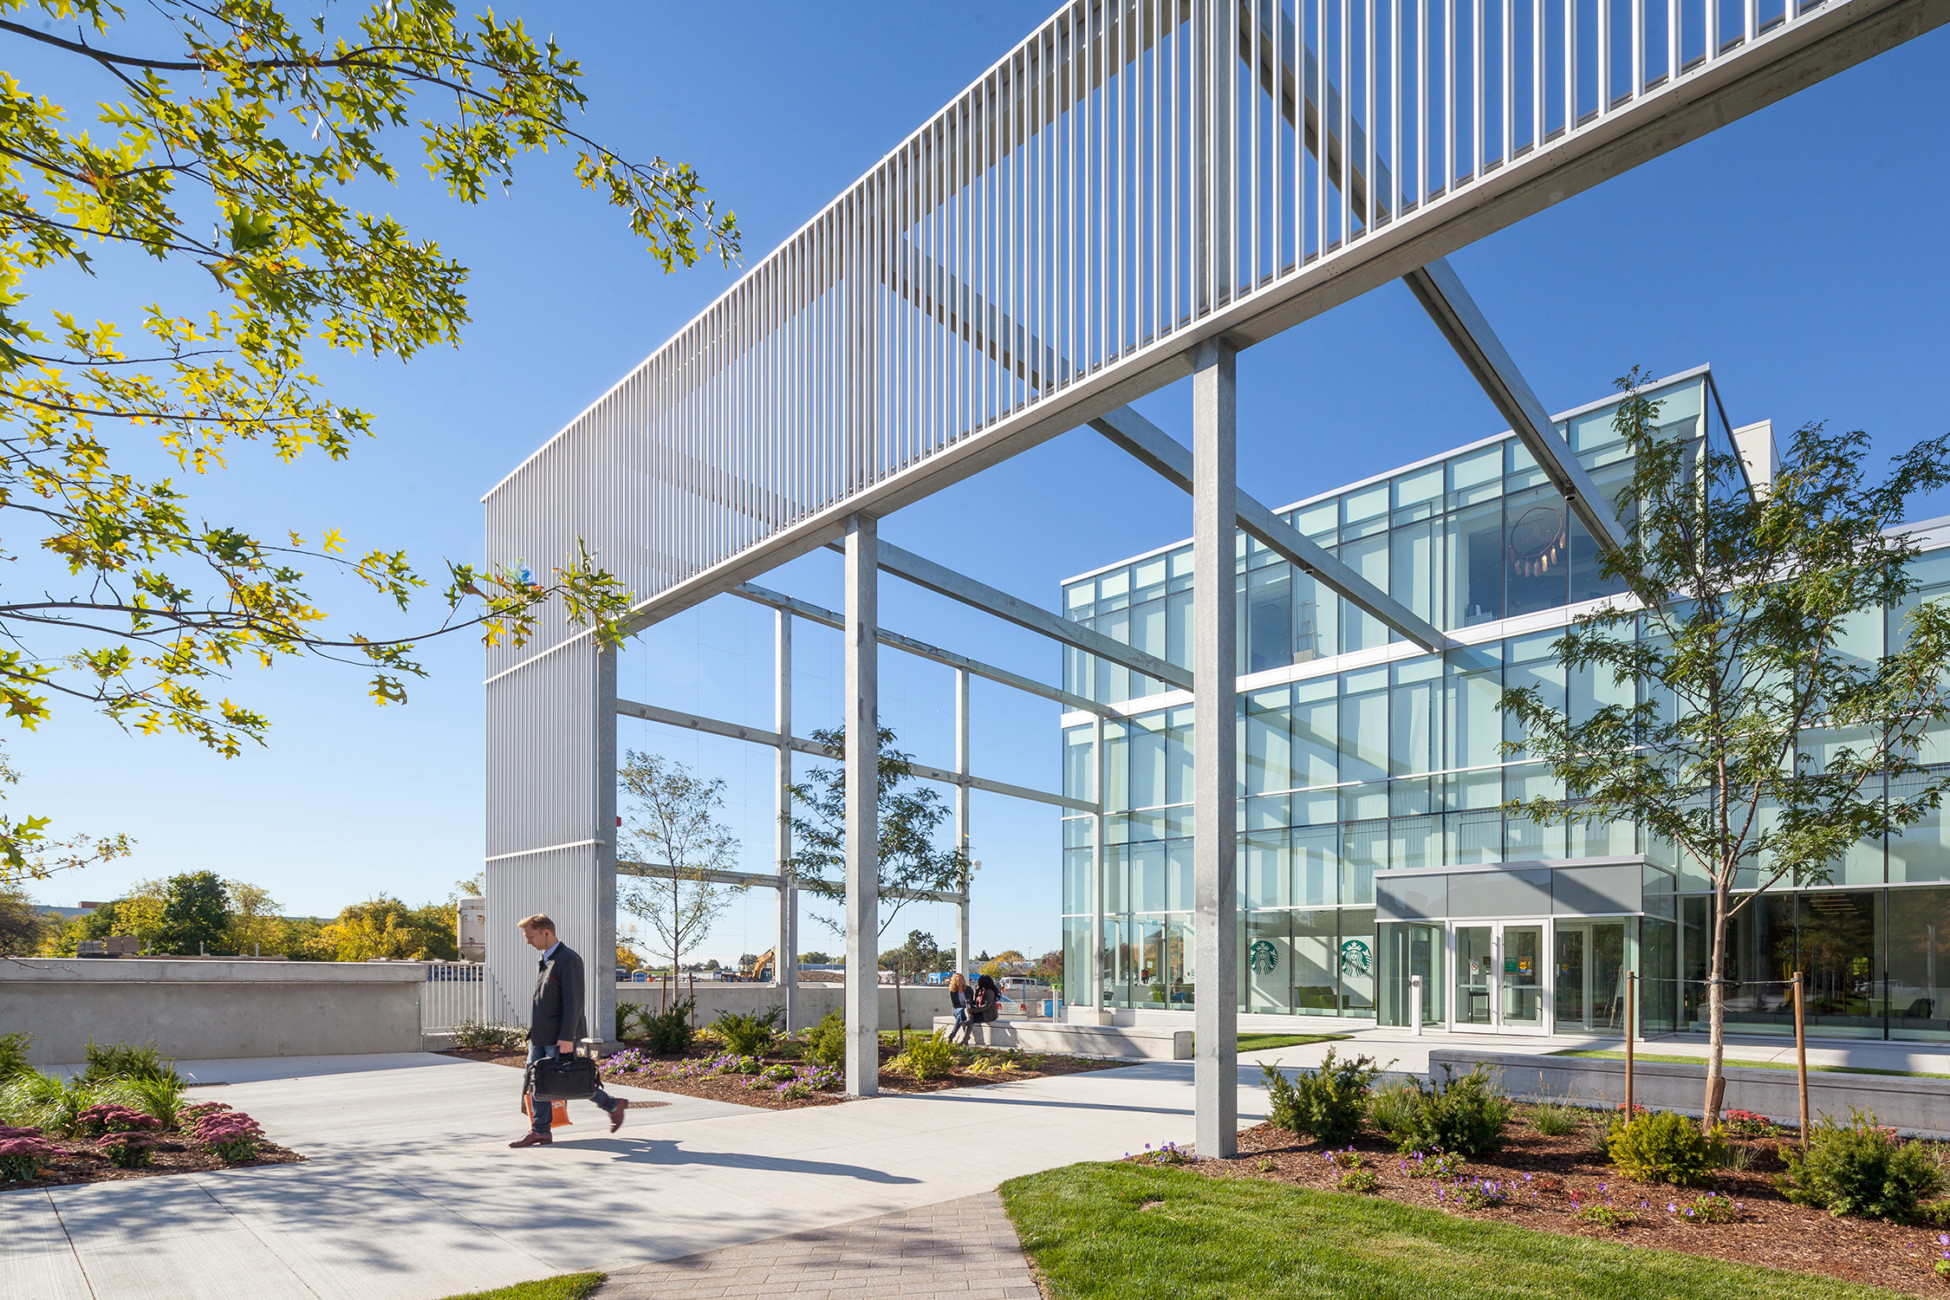 Humber College Student Welcome Amp Resource Centre